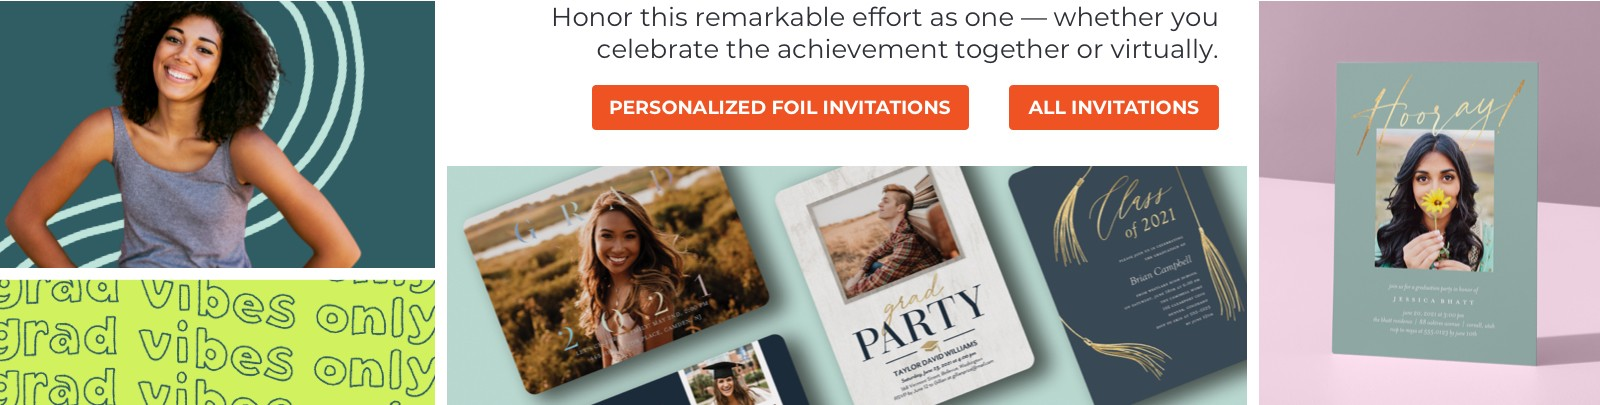 Honor this remarkable effort as one –– whether you celebrate the achievement together or virtually.